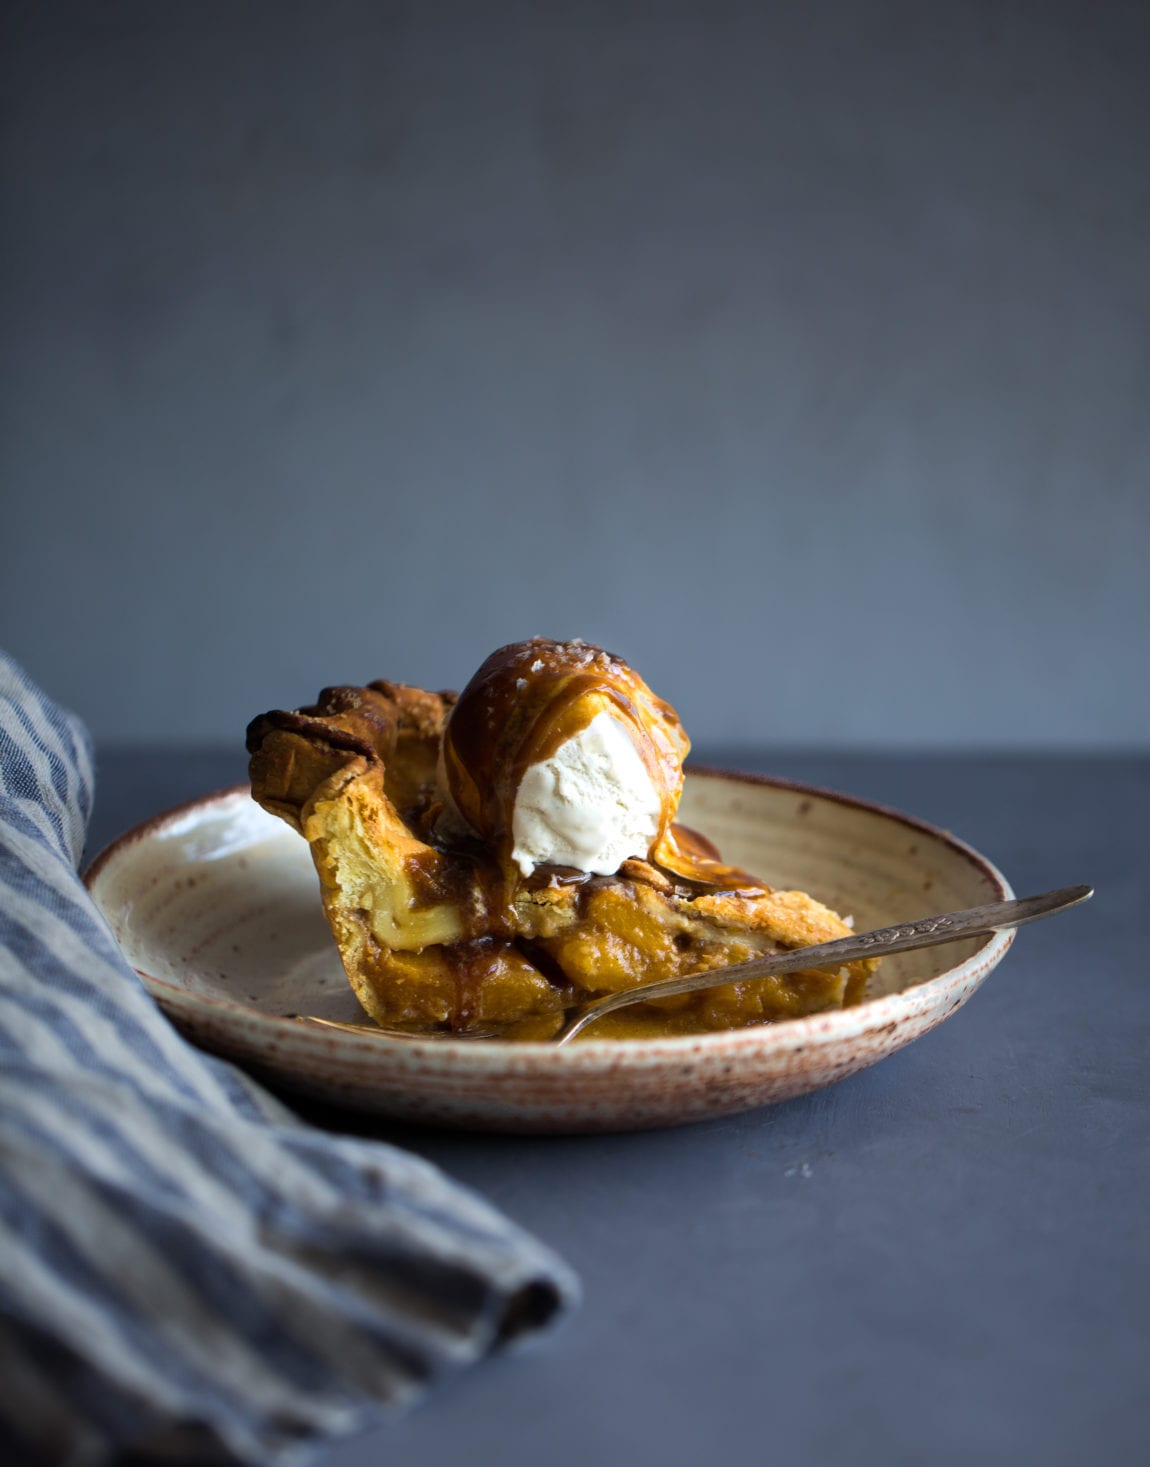 Peach & Salted Coconut Caramel Pie